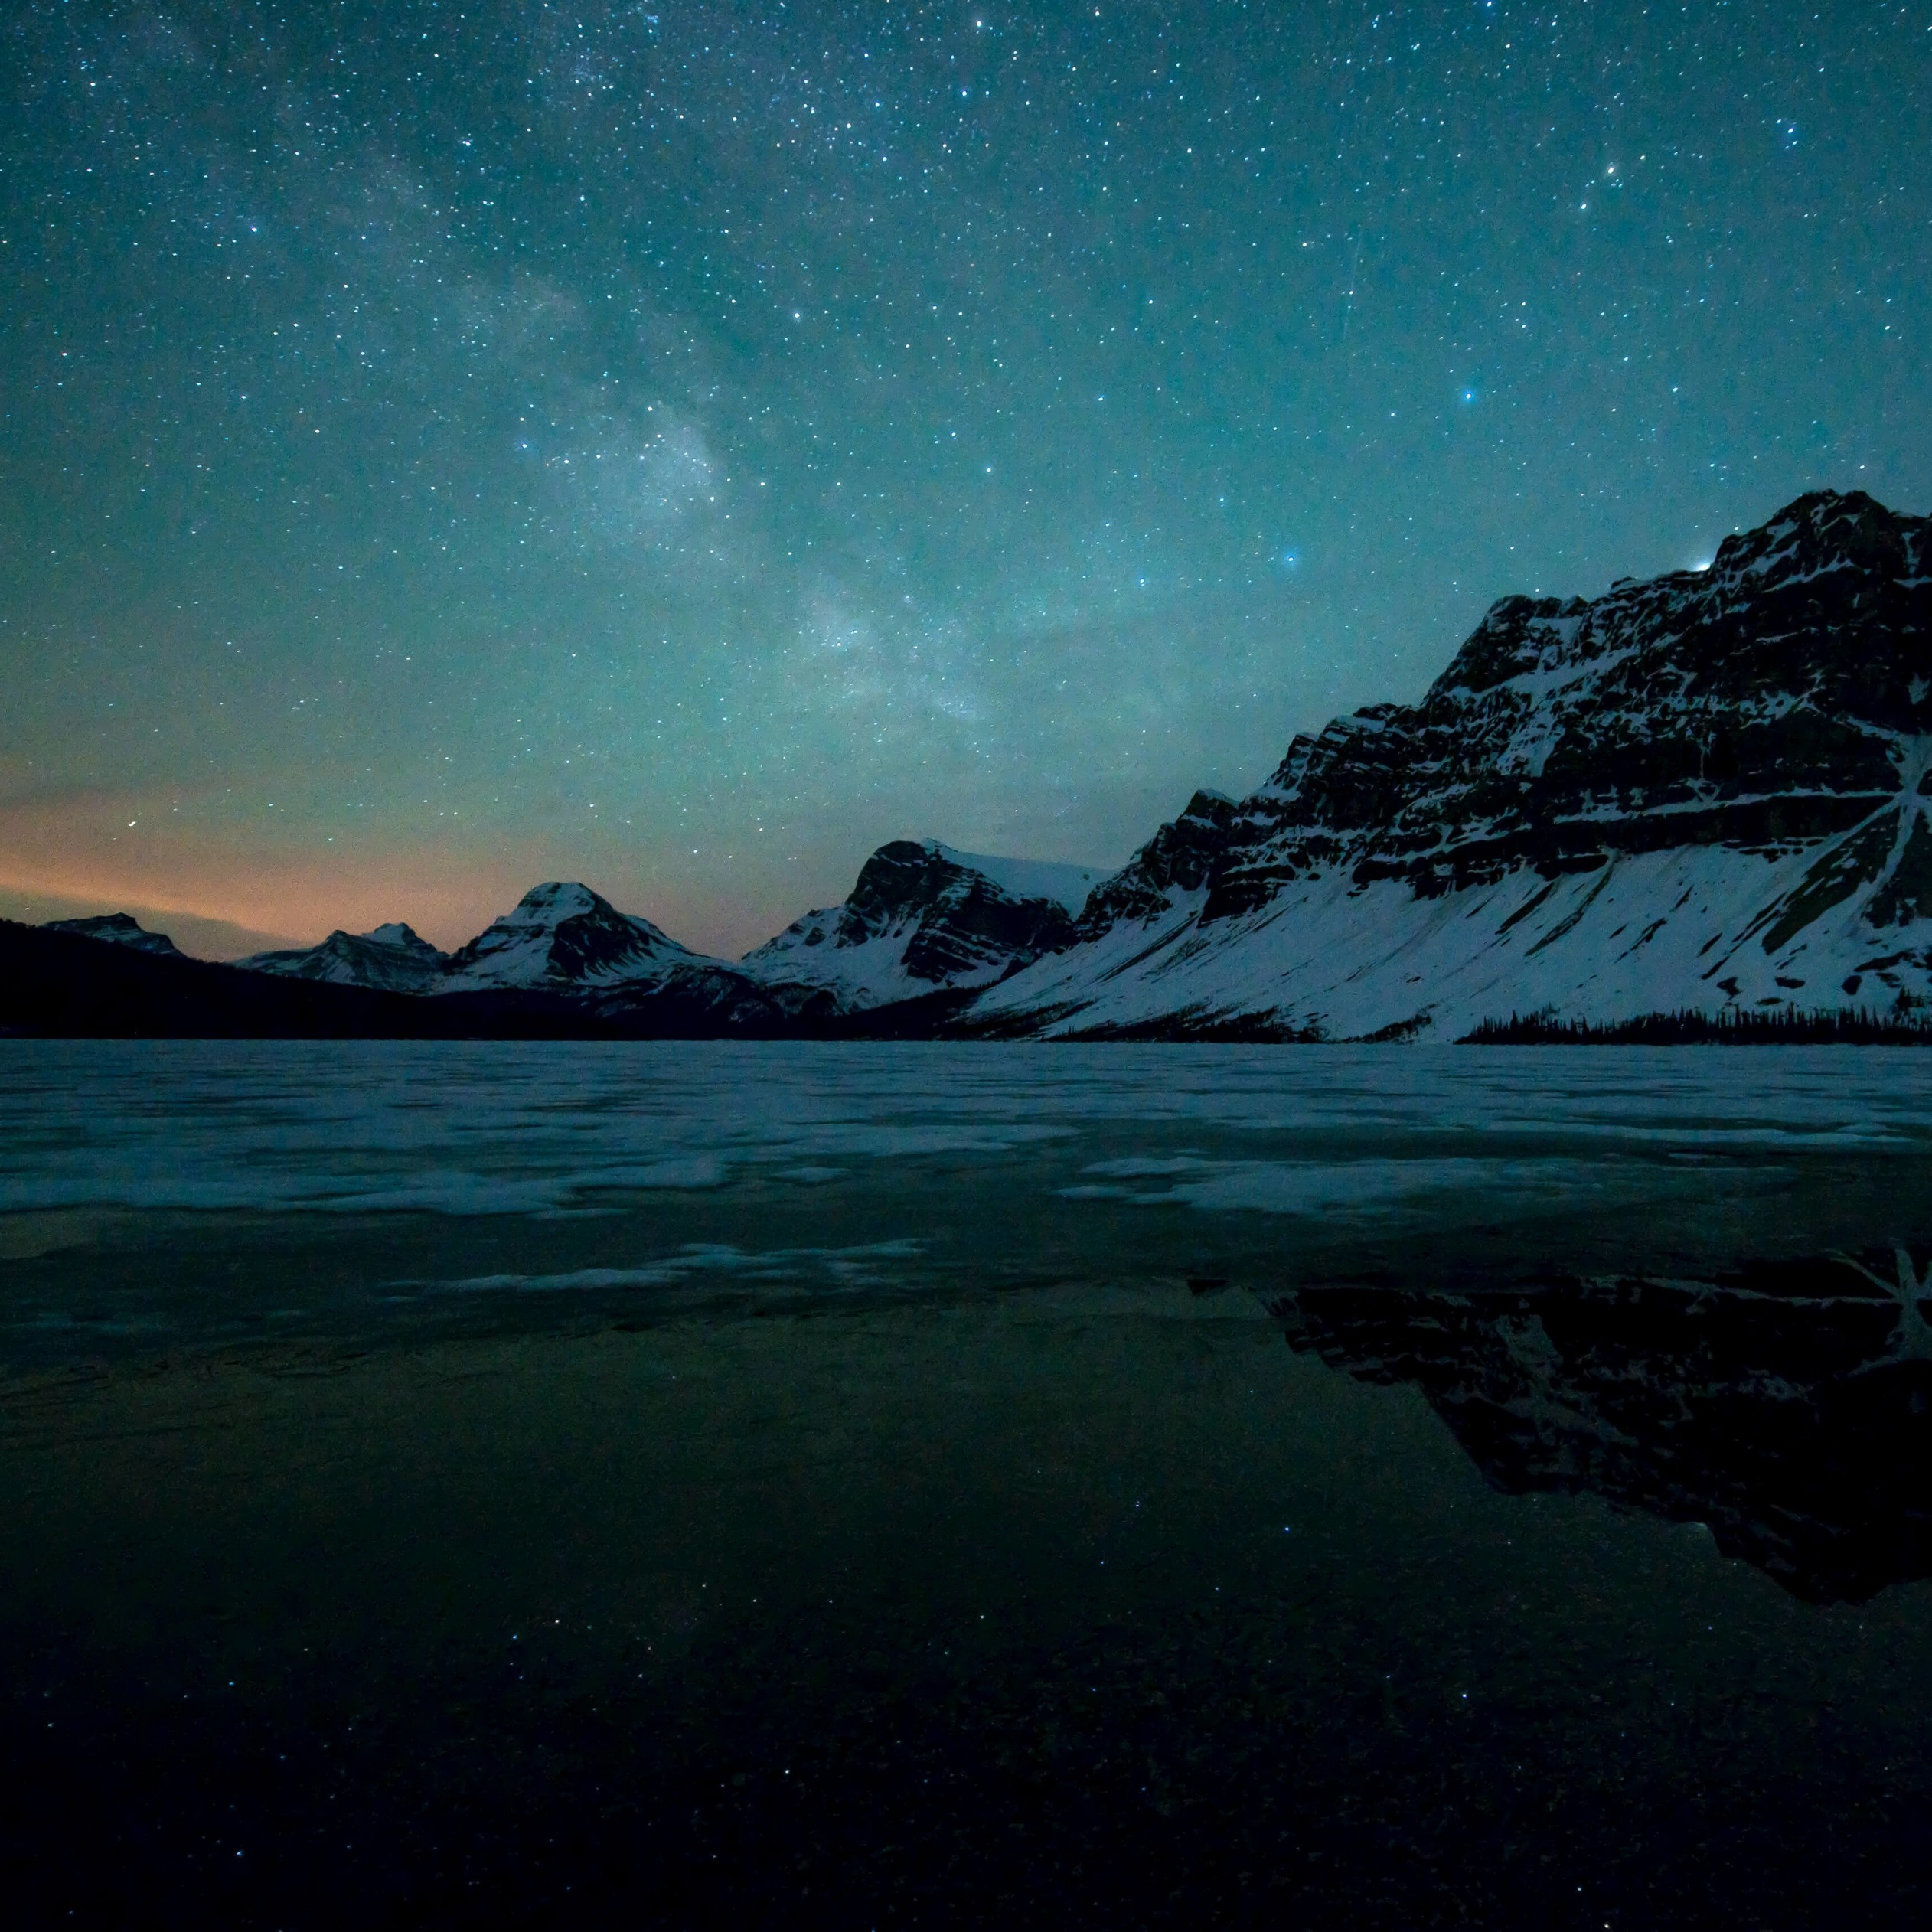 Milky Way over Bow Lake, Alberta, Canada Wallpaper for Apple iPad 3